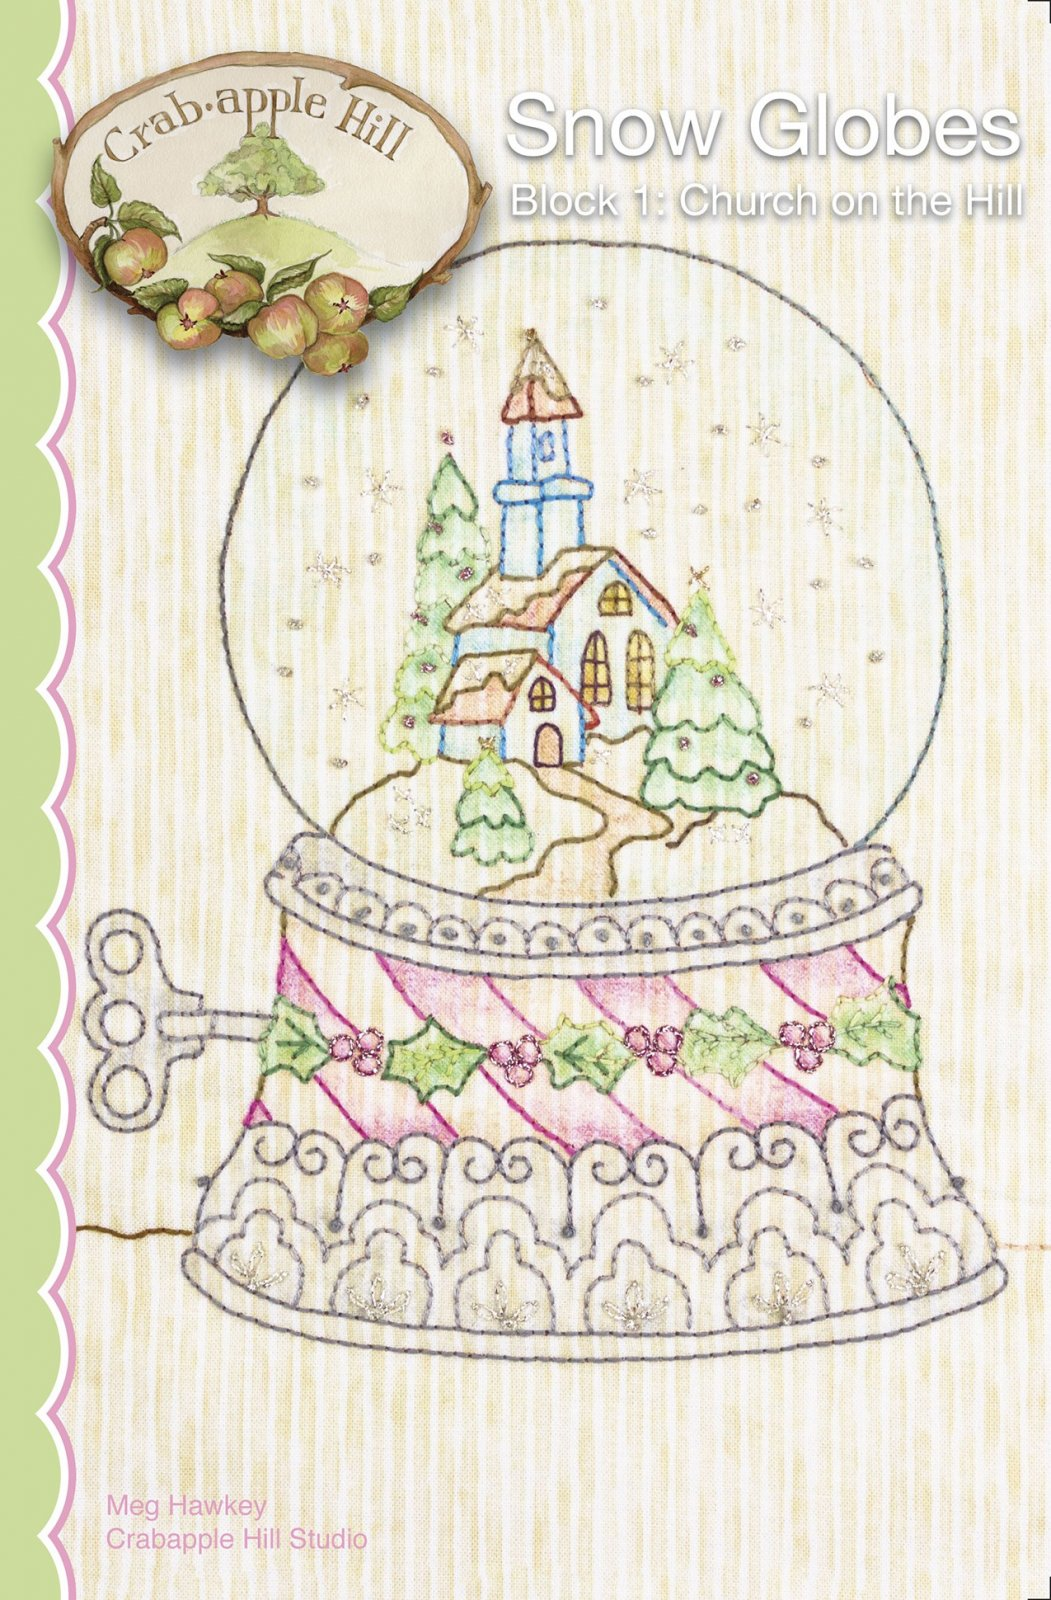 Snow Globes - 1 - Church on the Hill